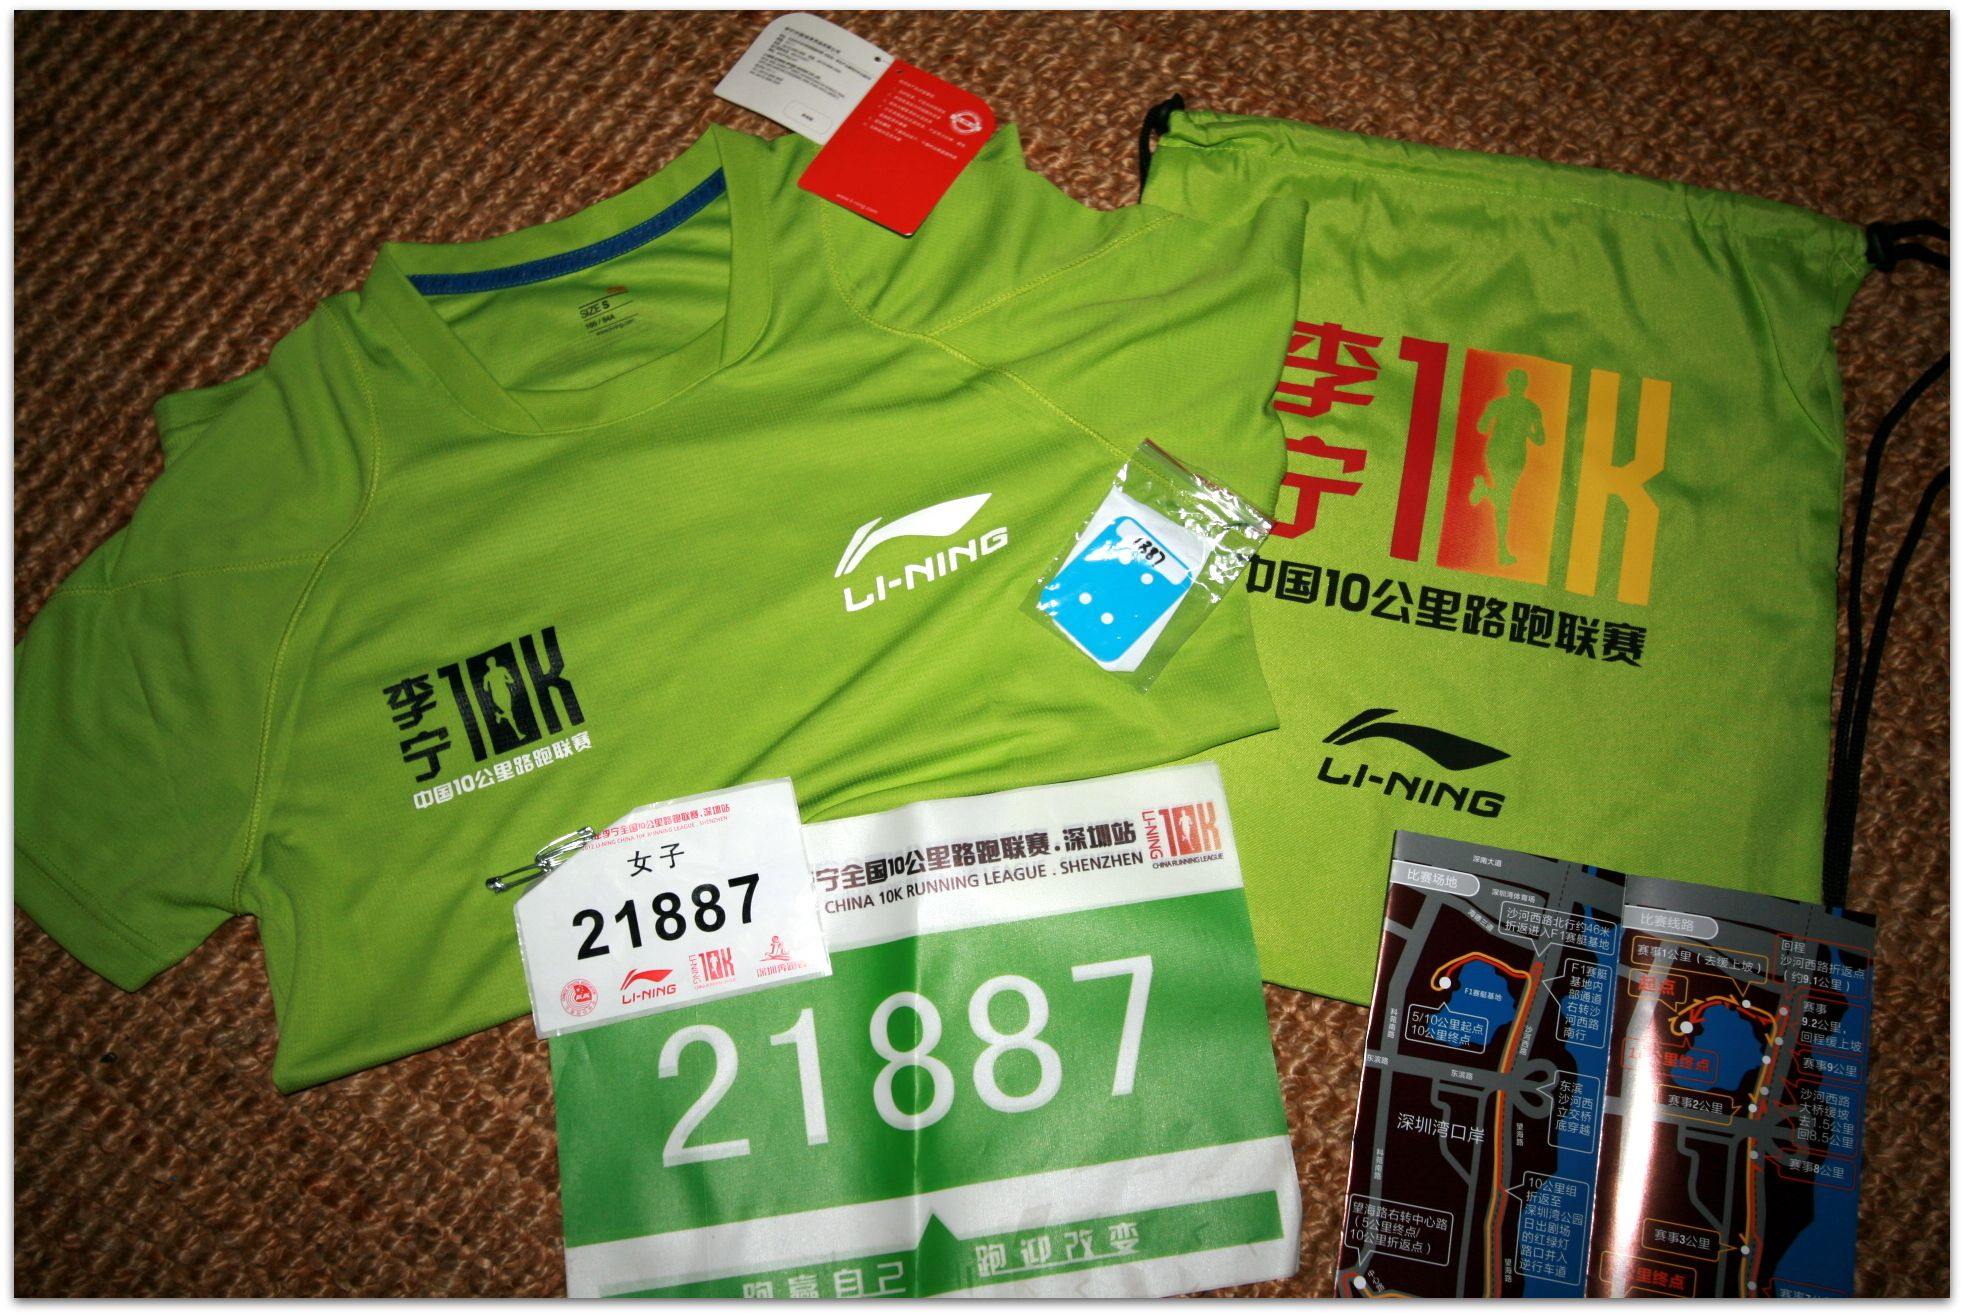 may 12: something that makes you happy. joining a race! doing my third 10k race tomorrow. first two had causes: environmental and for kids' charity..this one is a run for my mother. happy mother's day! #photoadayMay